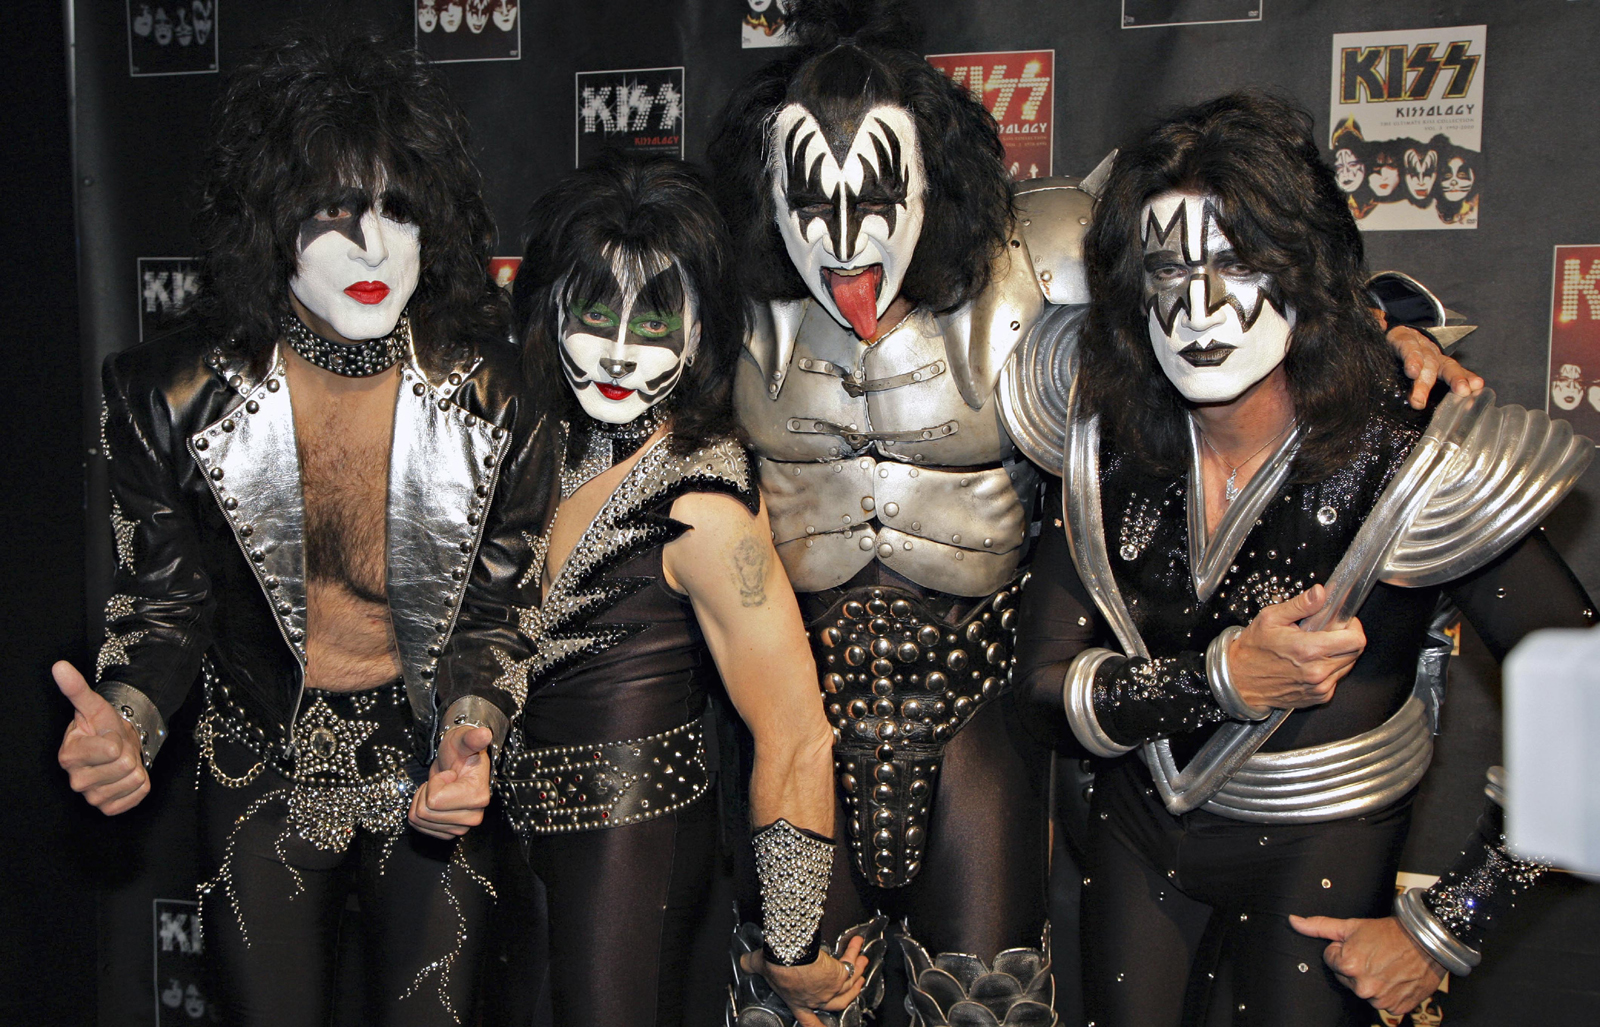 The Gauntlet Peter Criss Announces Final Appearances With Kiss